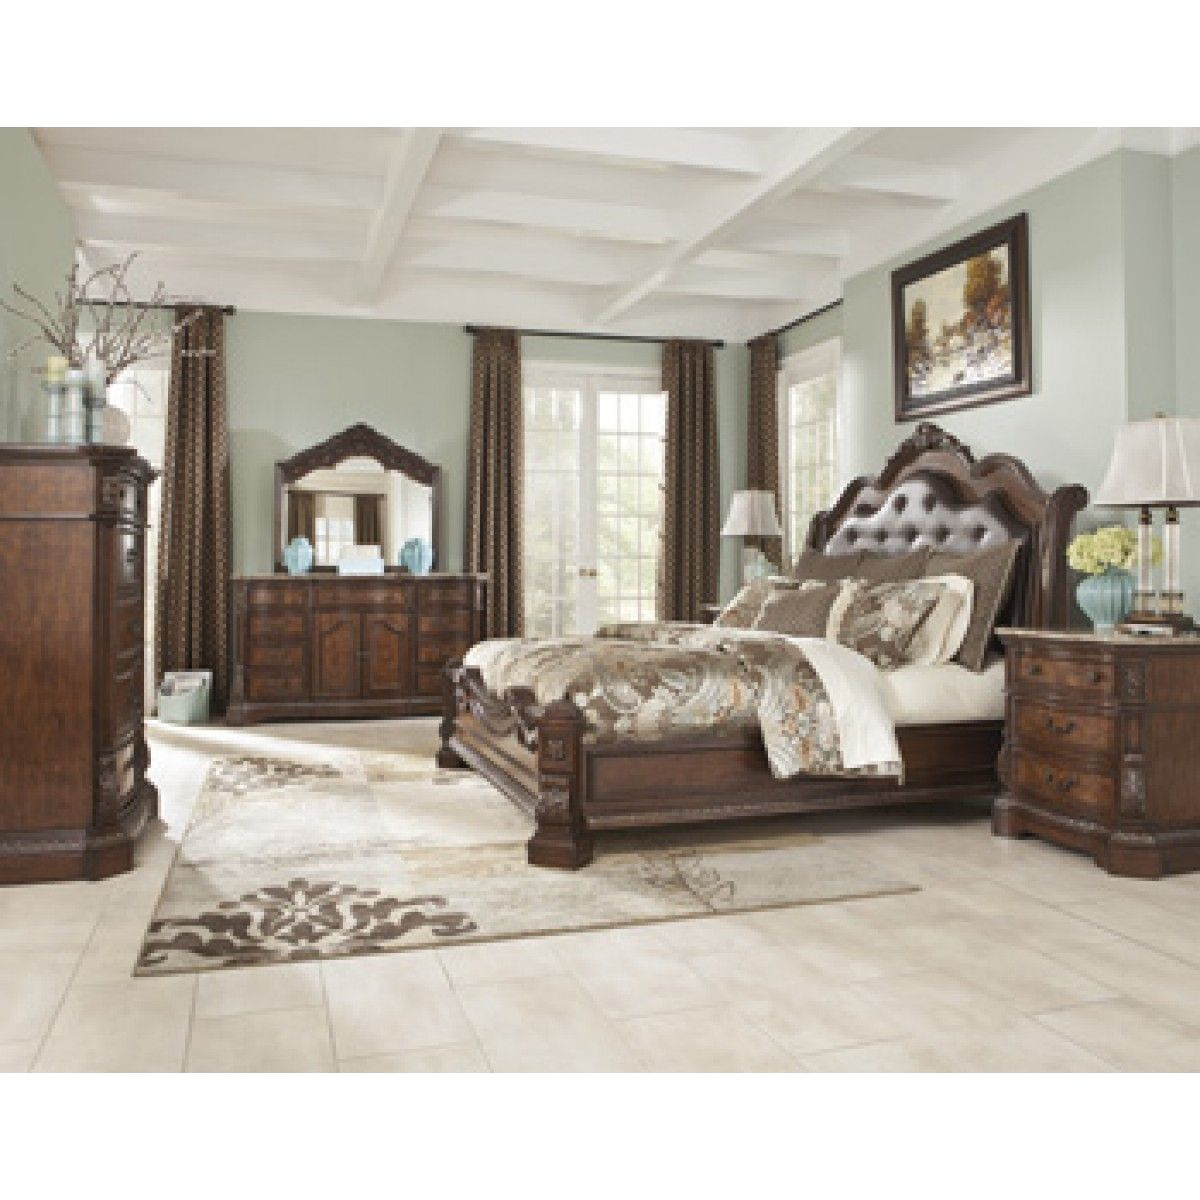 Ashley+Furniture+Bedroom+Furniture